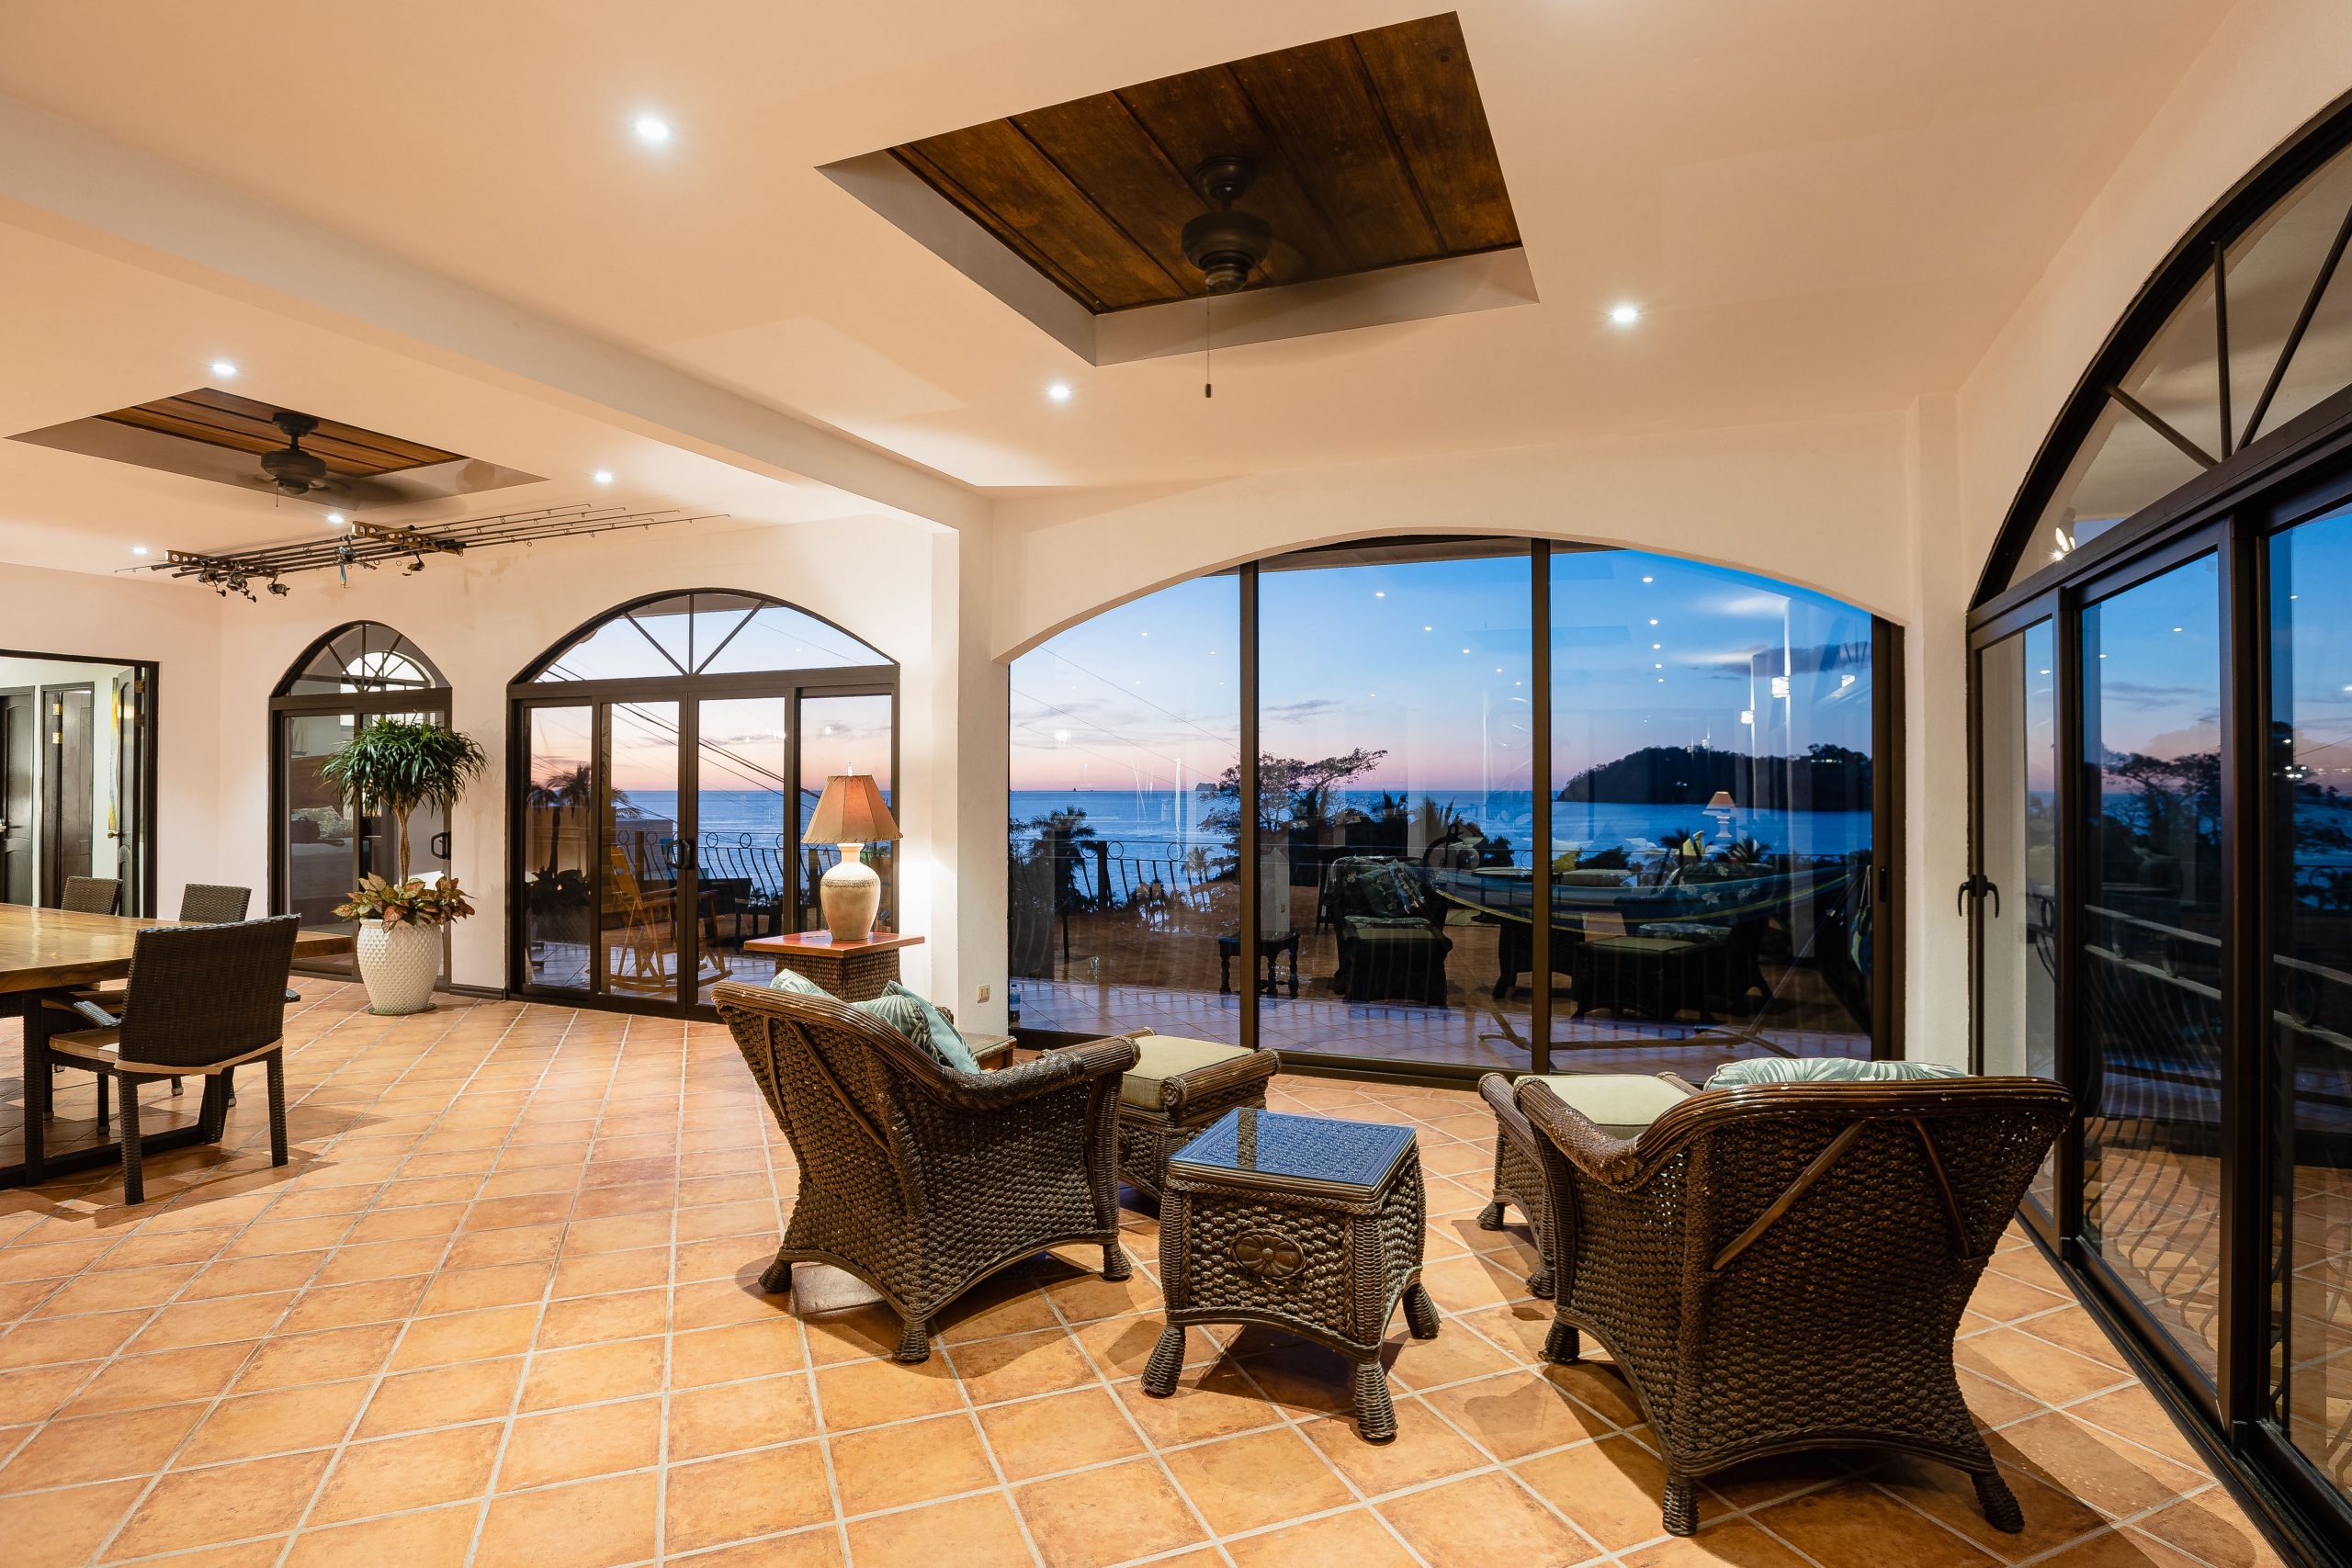 Recently Remodeled Home In Flamingo 9 Bedroom – Flamingo Beach $2.5M